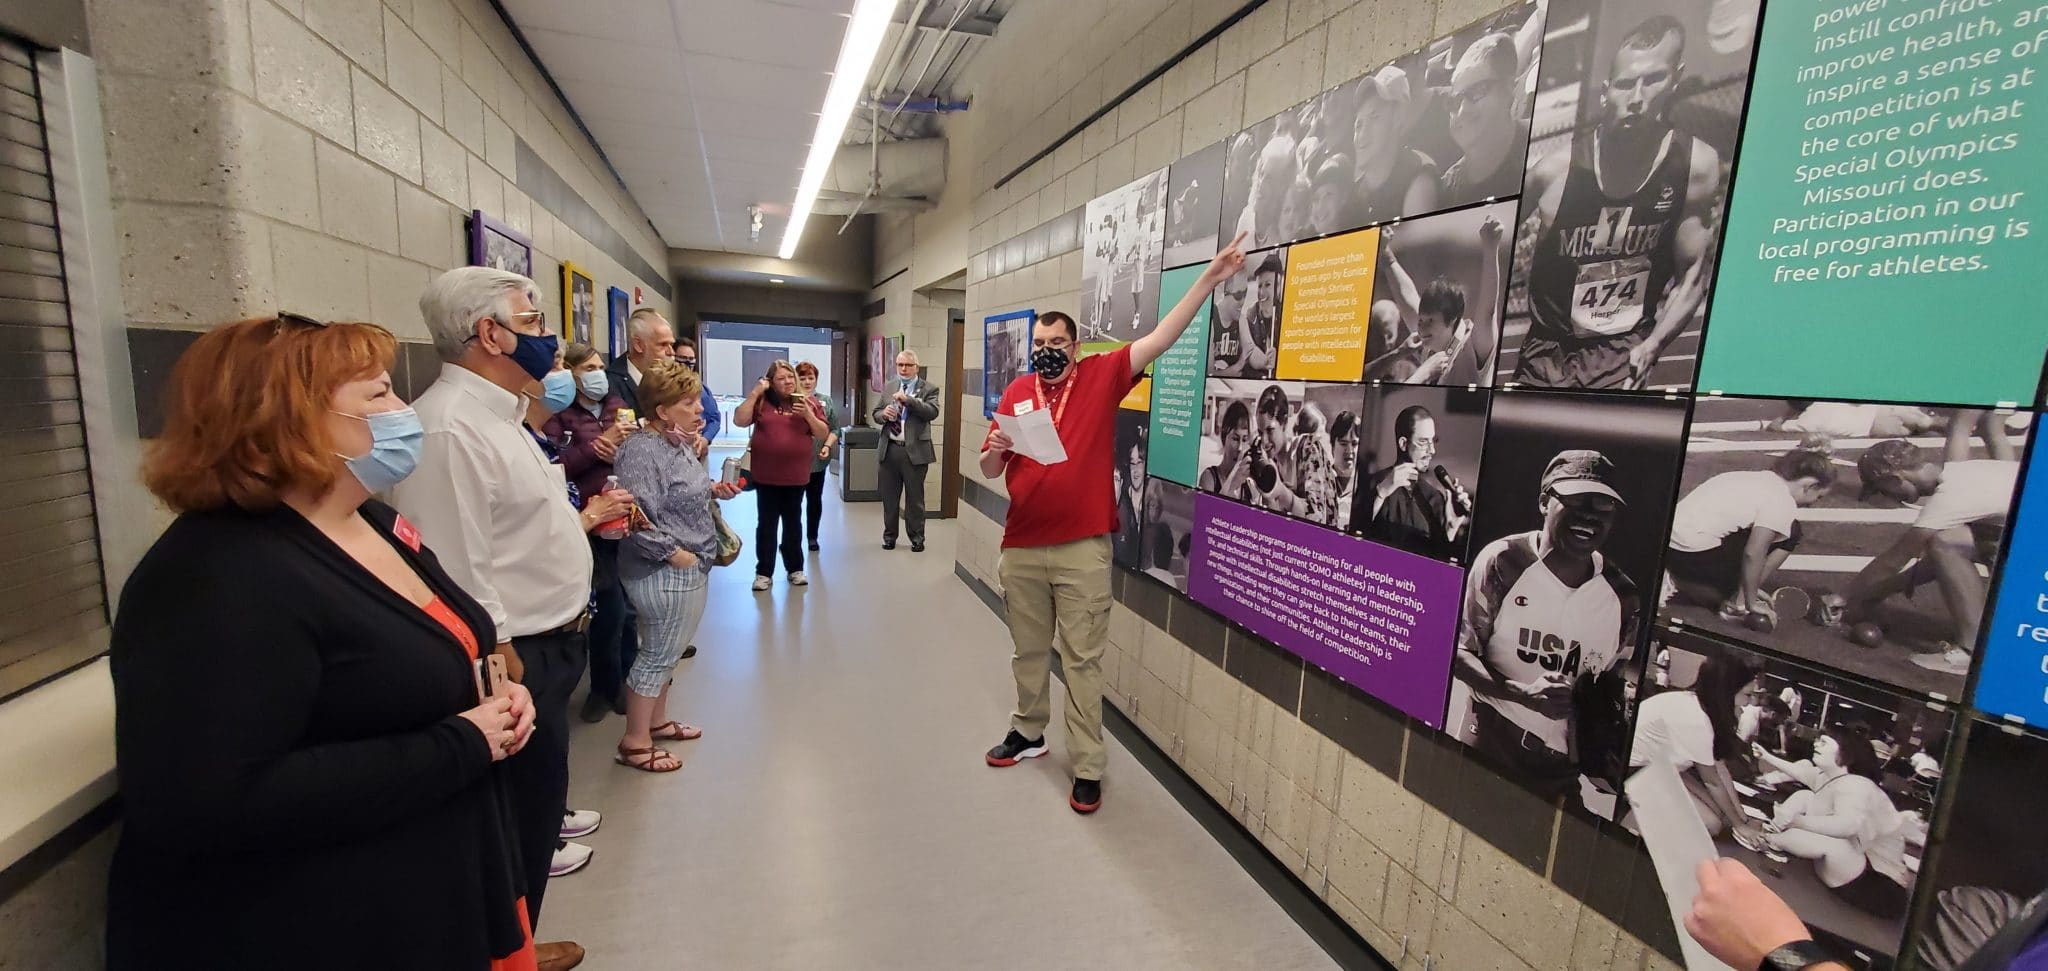 Training for Life Campus host Michael Mohrmann, right, leads part of the tour April 25 when some 120 Knights of Columbus members visited Special Olympics Missouri.